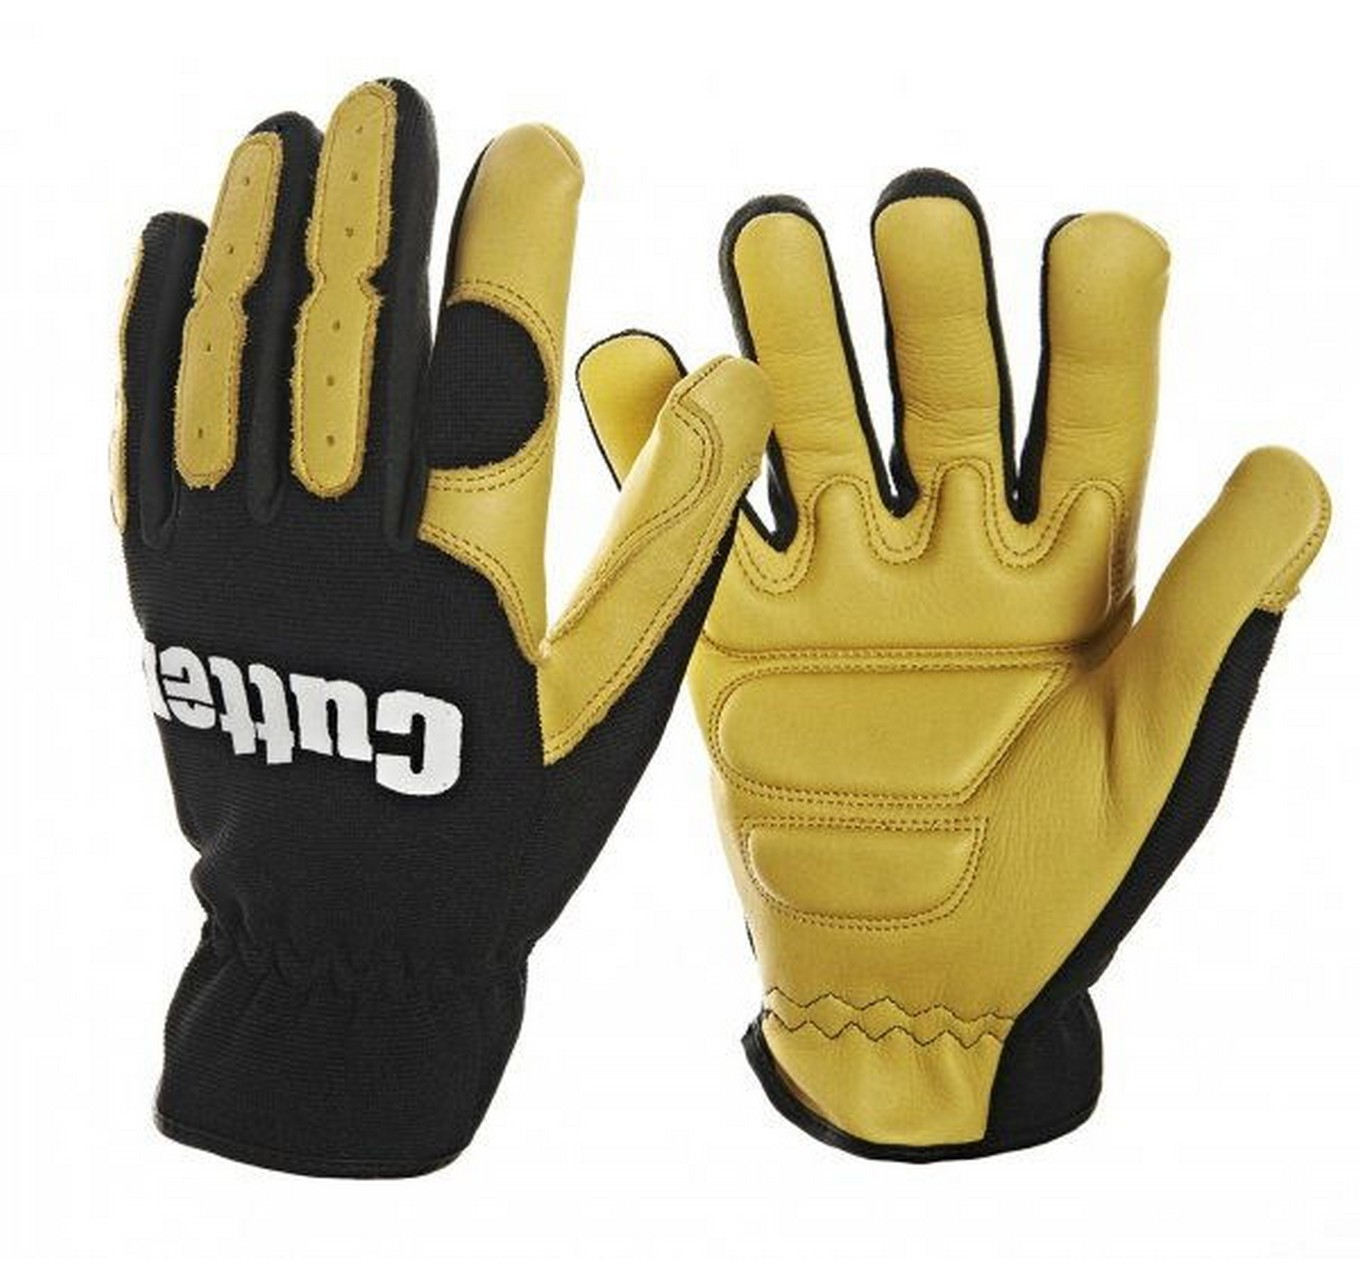 Strimmer & Trimmer Gloves S